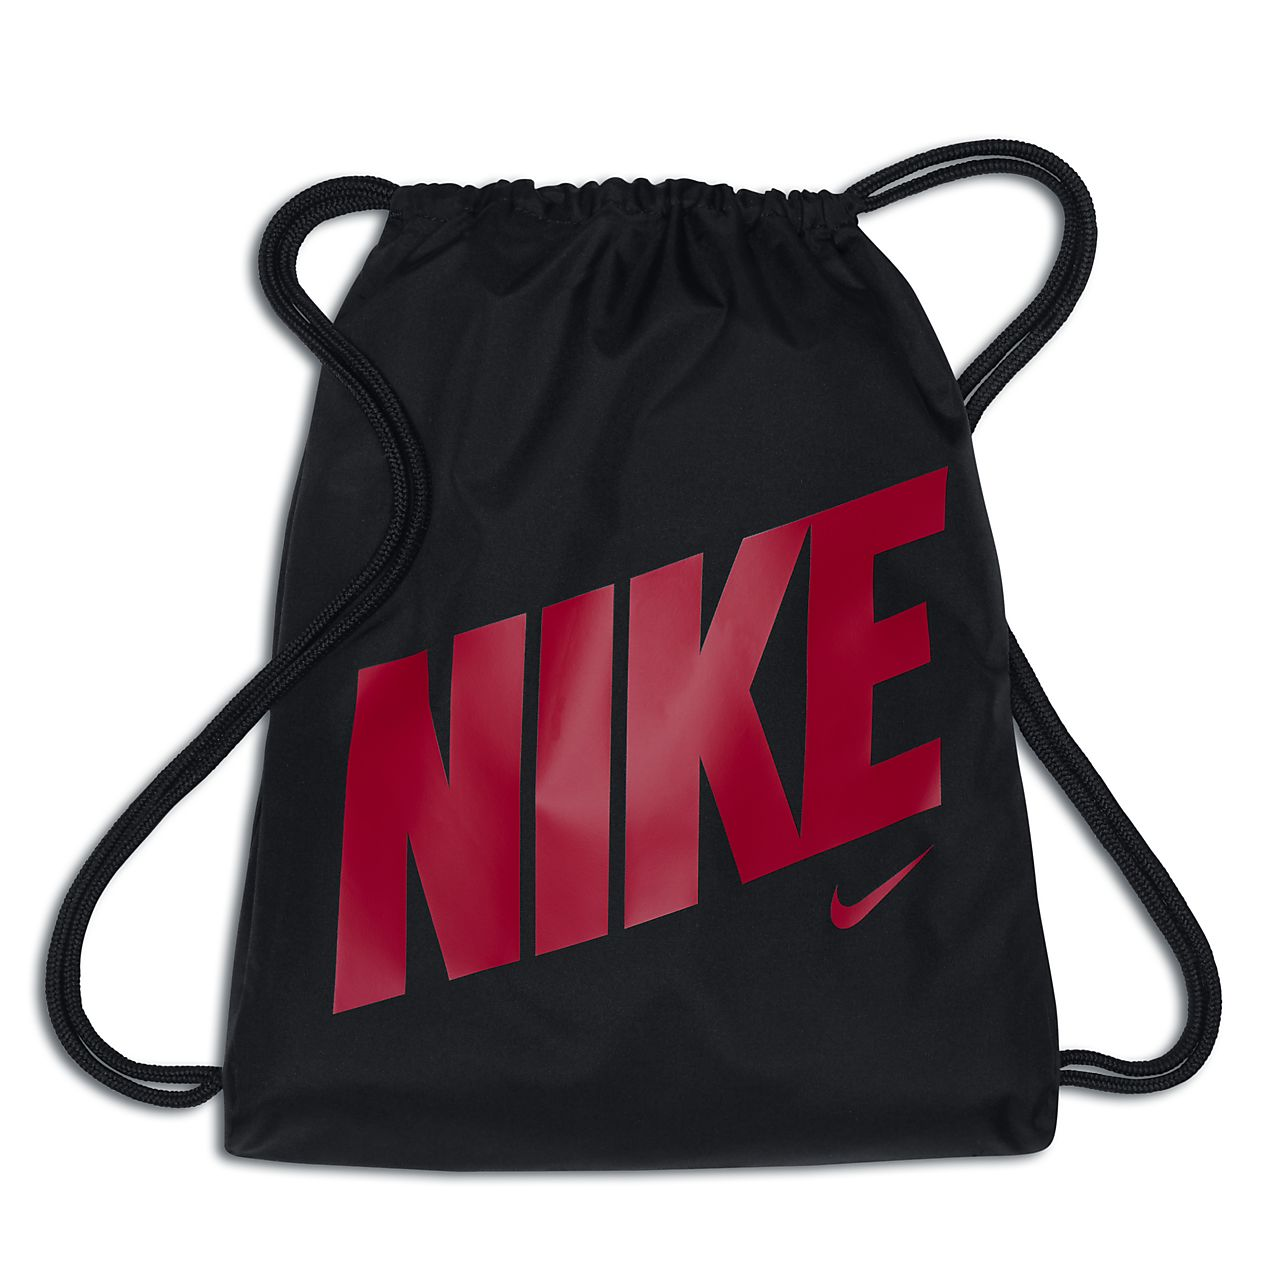 6c4955c09 Nike Graphic Kids' Gym Sack. Nike.com